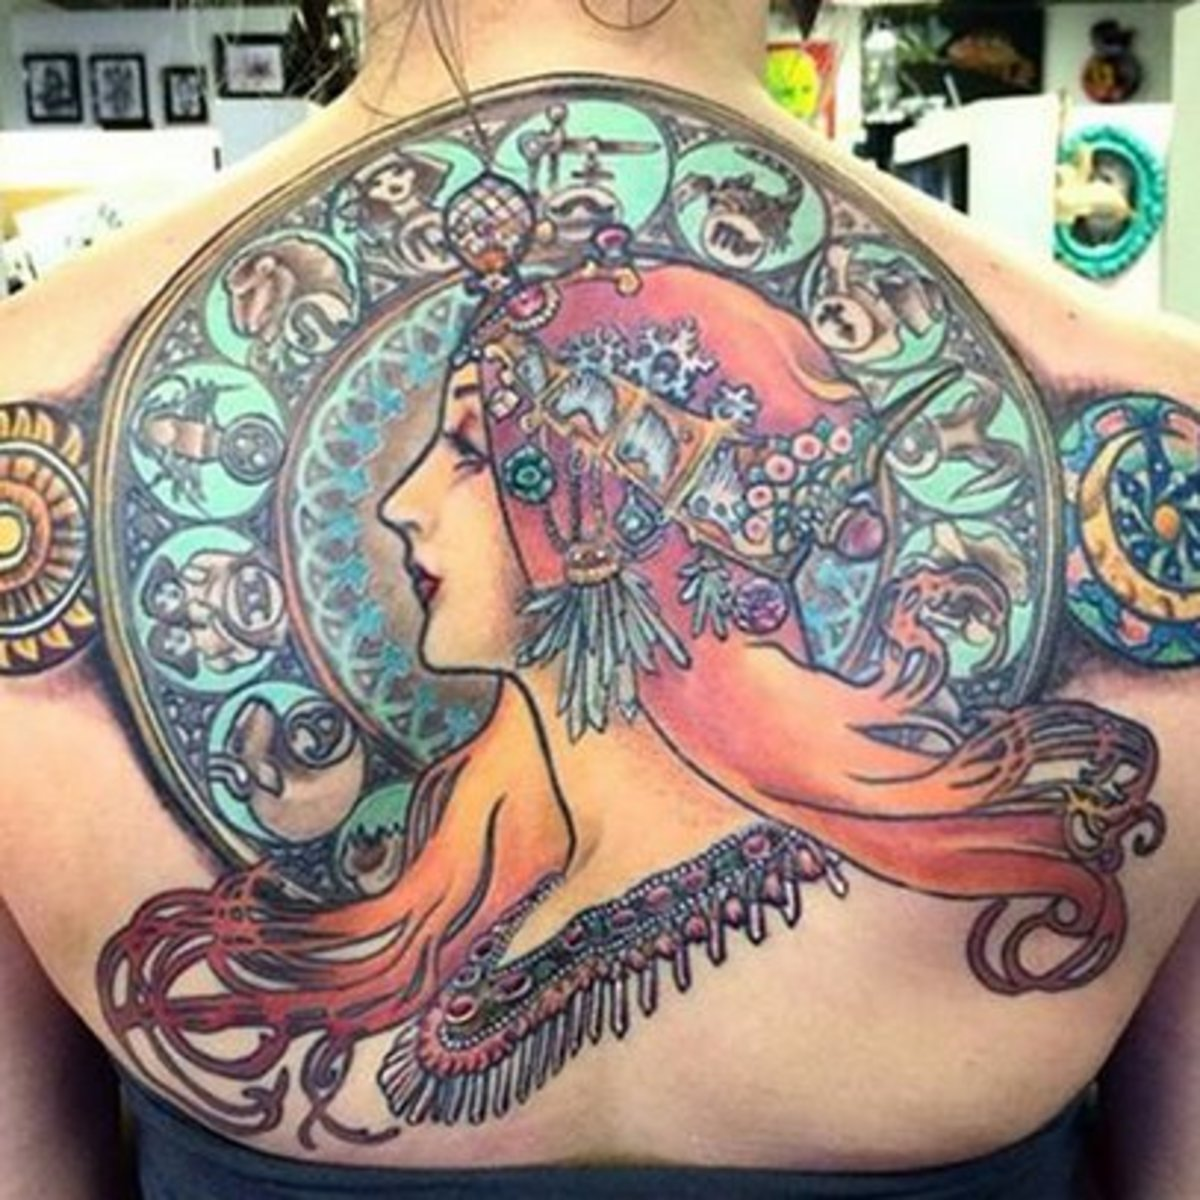 Tattoo Ideas Artists And Models: Tattoos Inspired By Alphonse Mucha